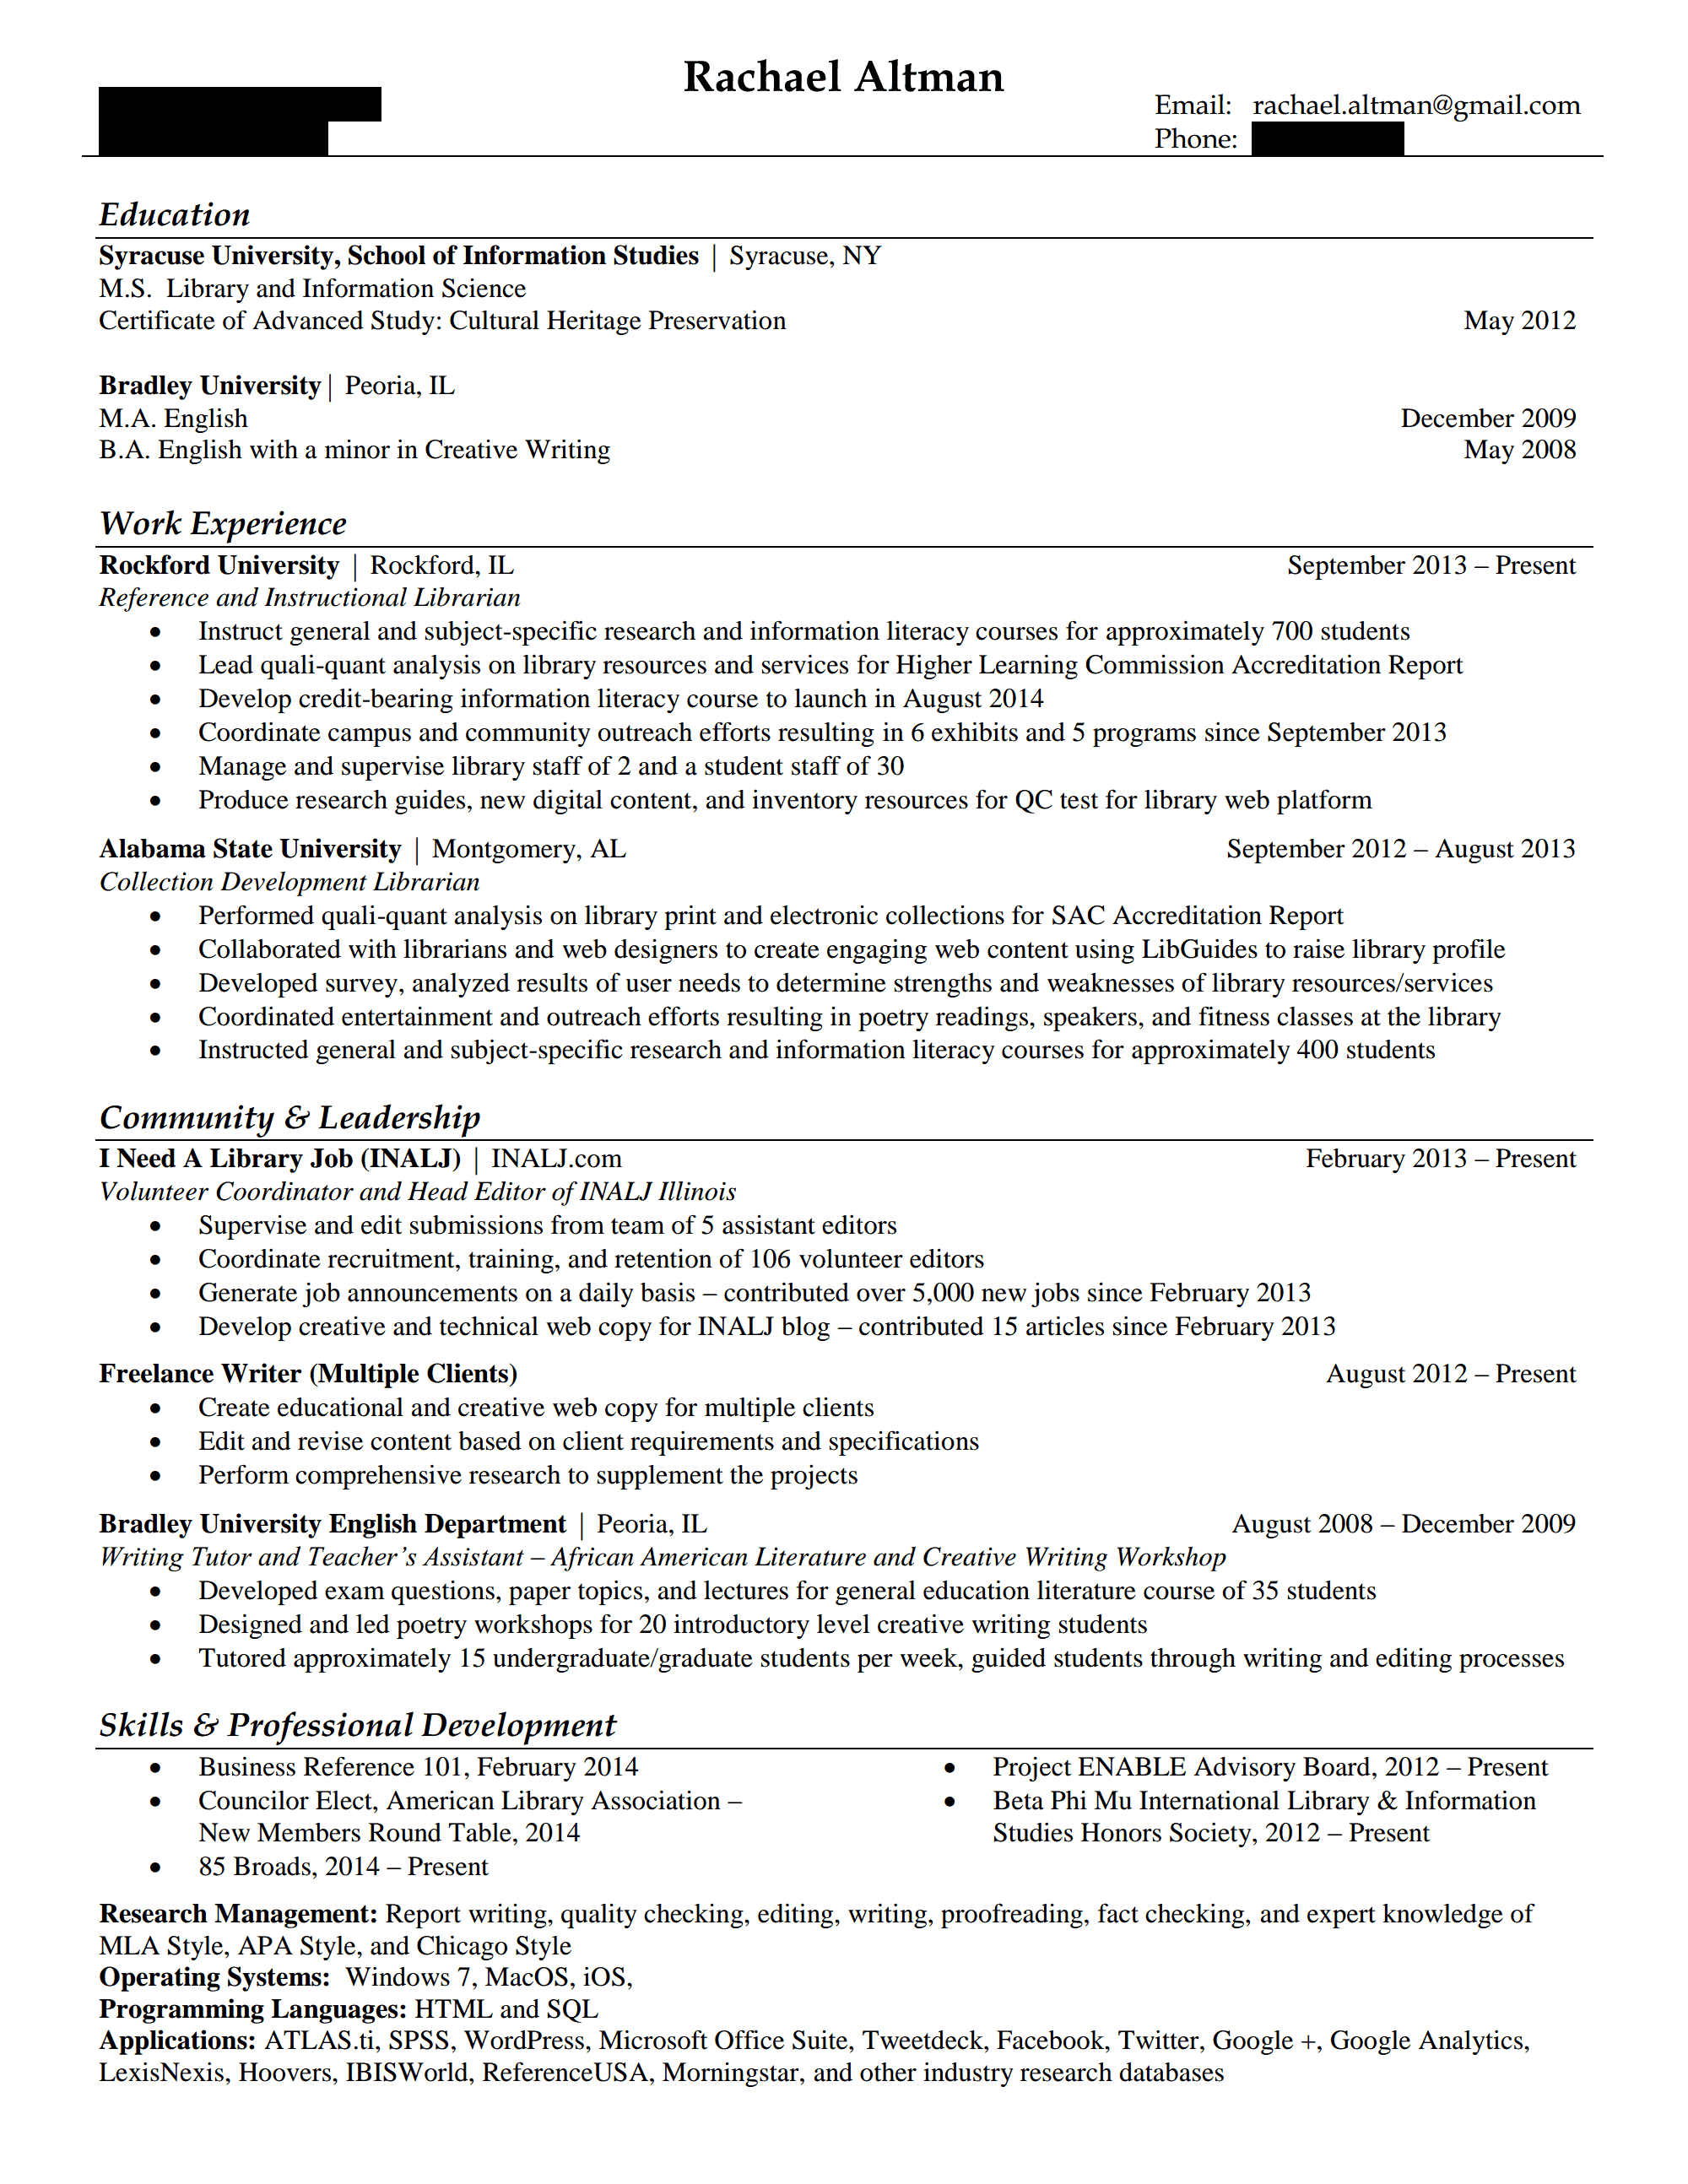 Resume Market Research Analyst Other Organization Or Library Type Hiring Librarians